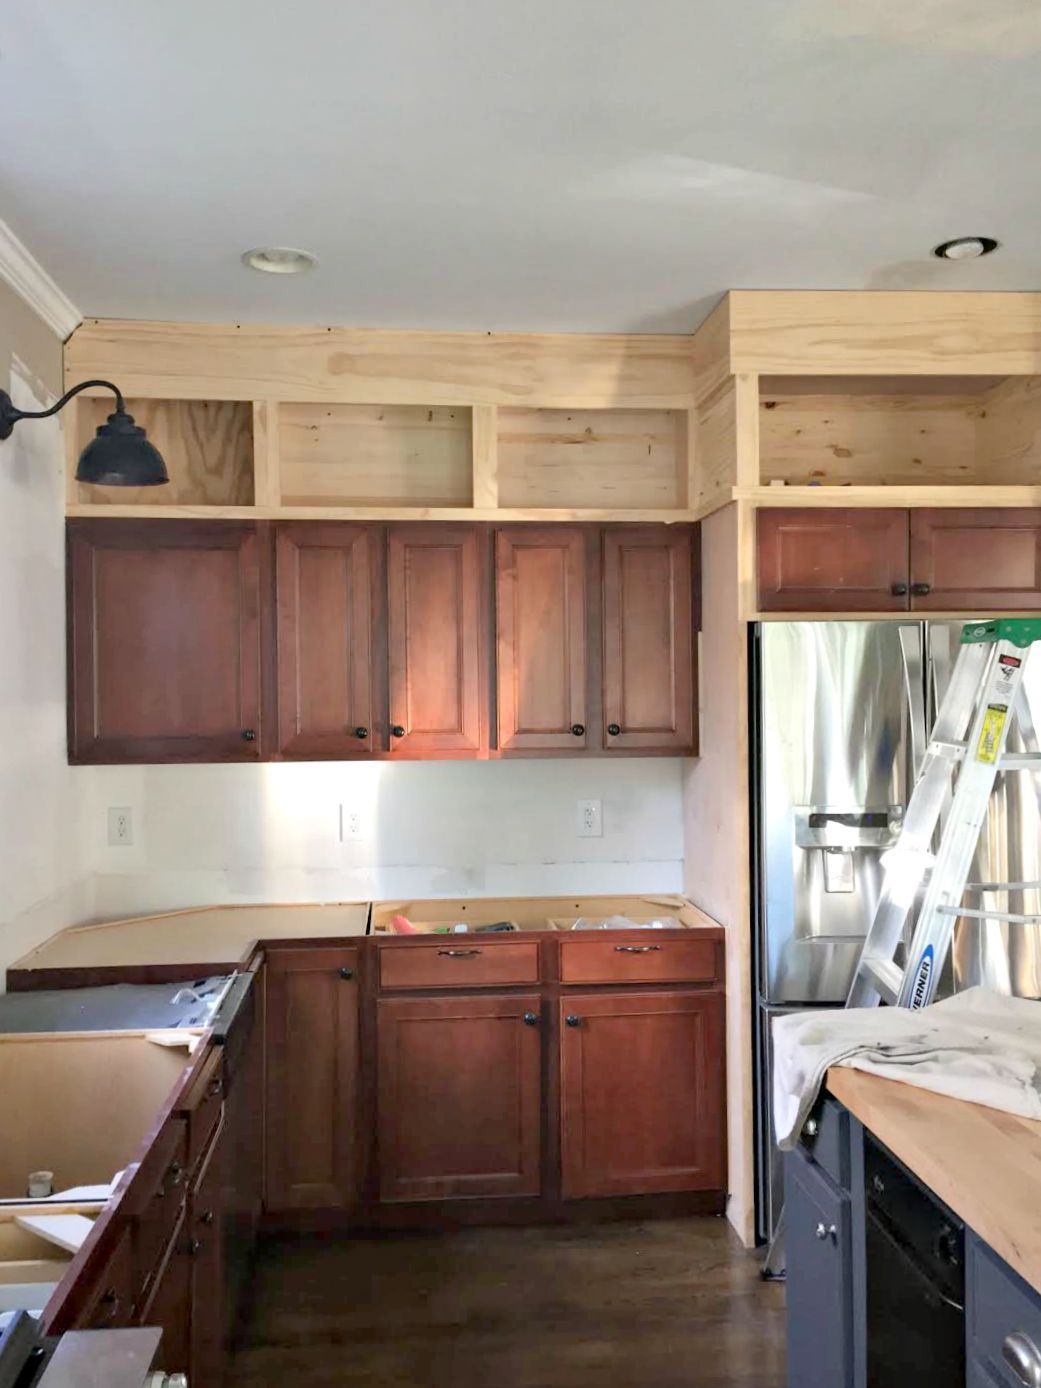 Building Cabinets Up To The Ceiling Kitchen Cabinets To Ceiling Building Kitchen Cabinets New Kitchen Cabinets